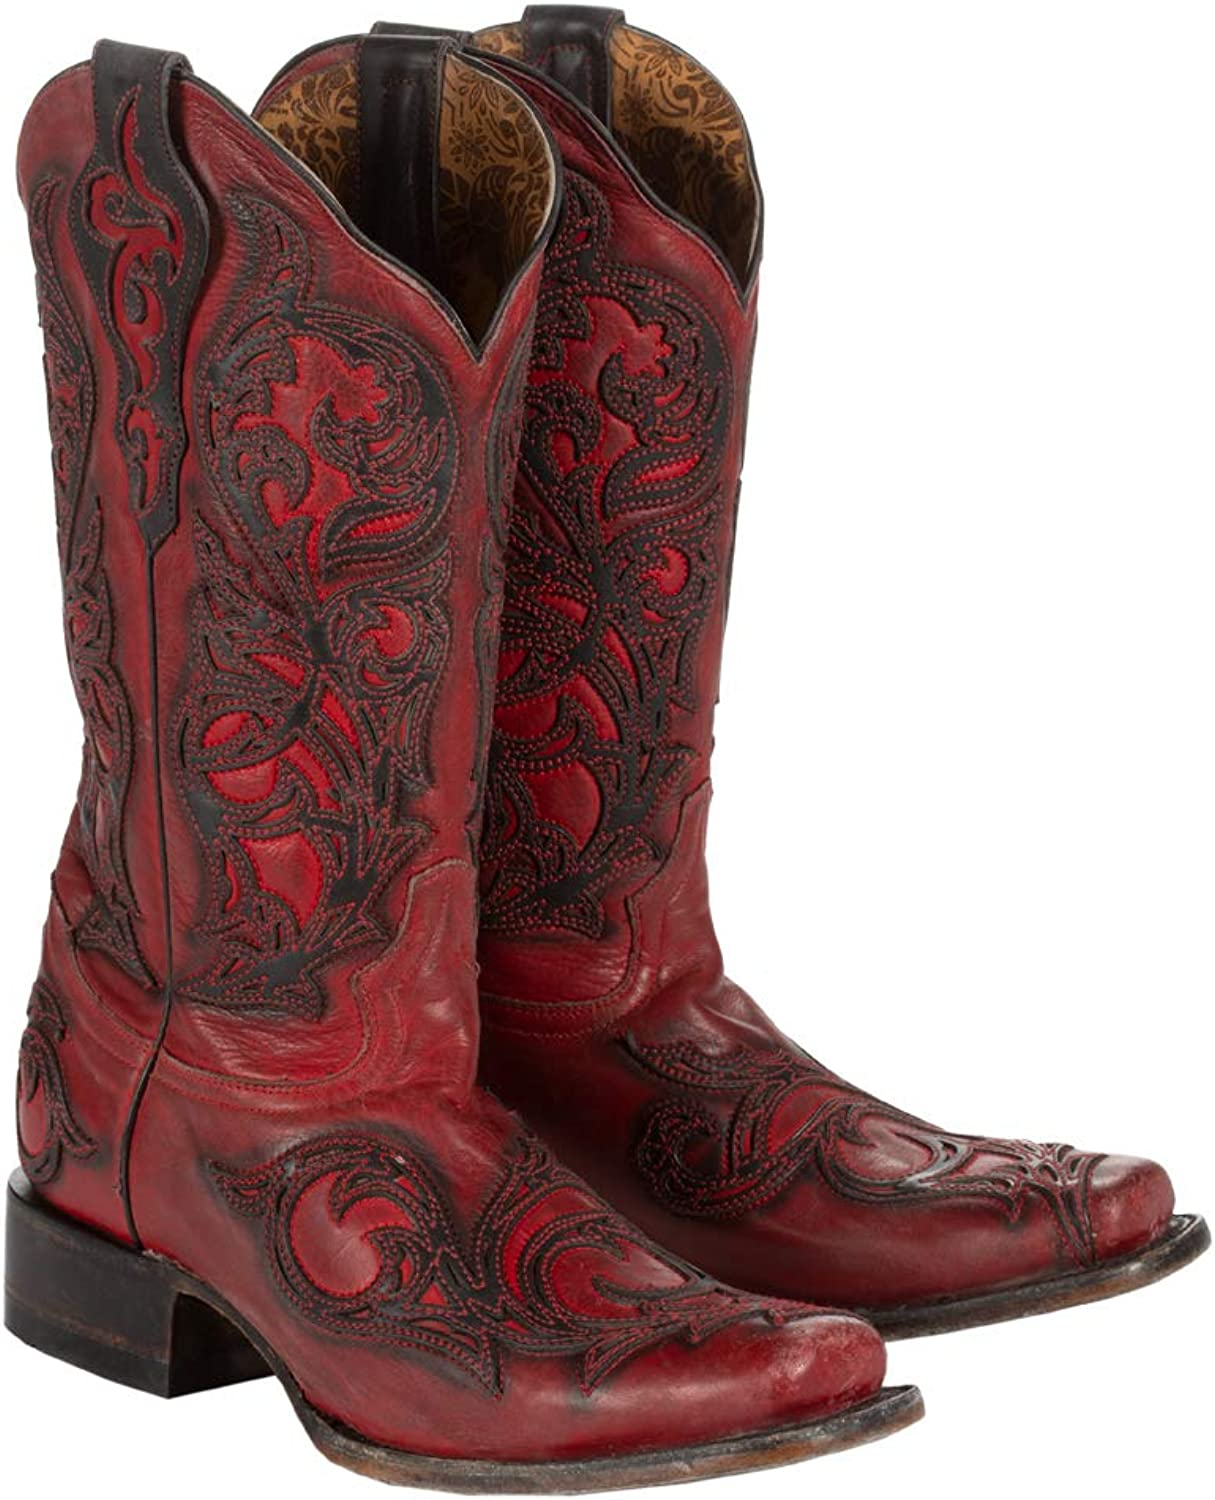 CORRAL Women's Red with Black Overlay Square Toe Cowgirl Boots G1468